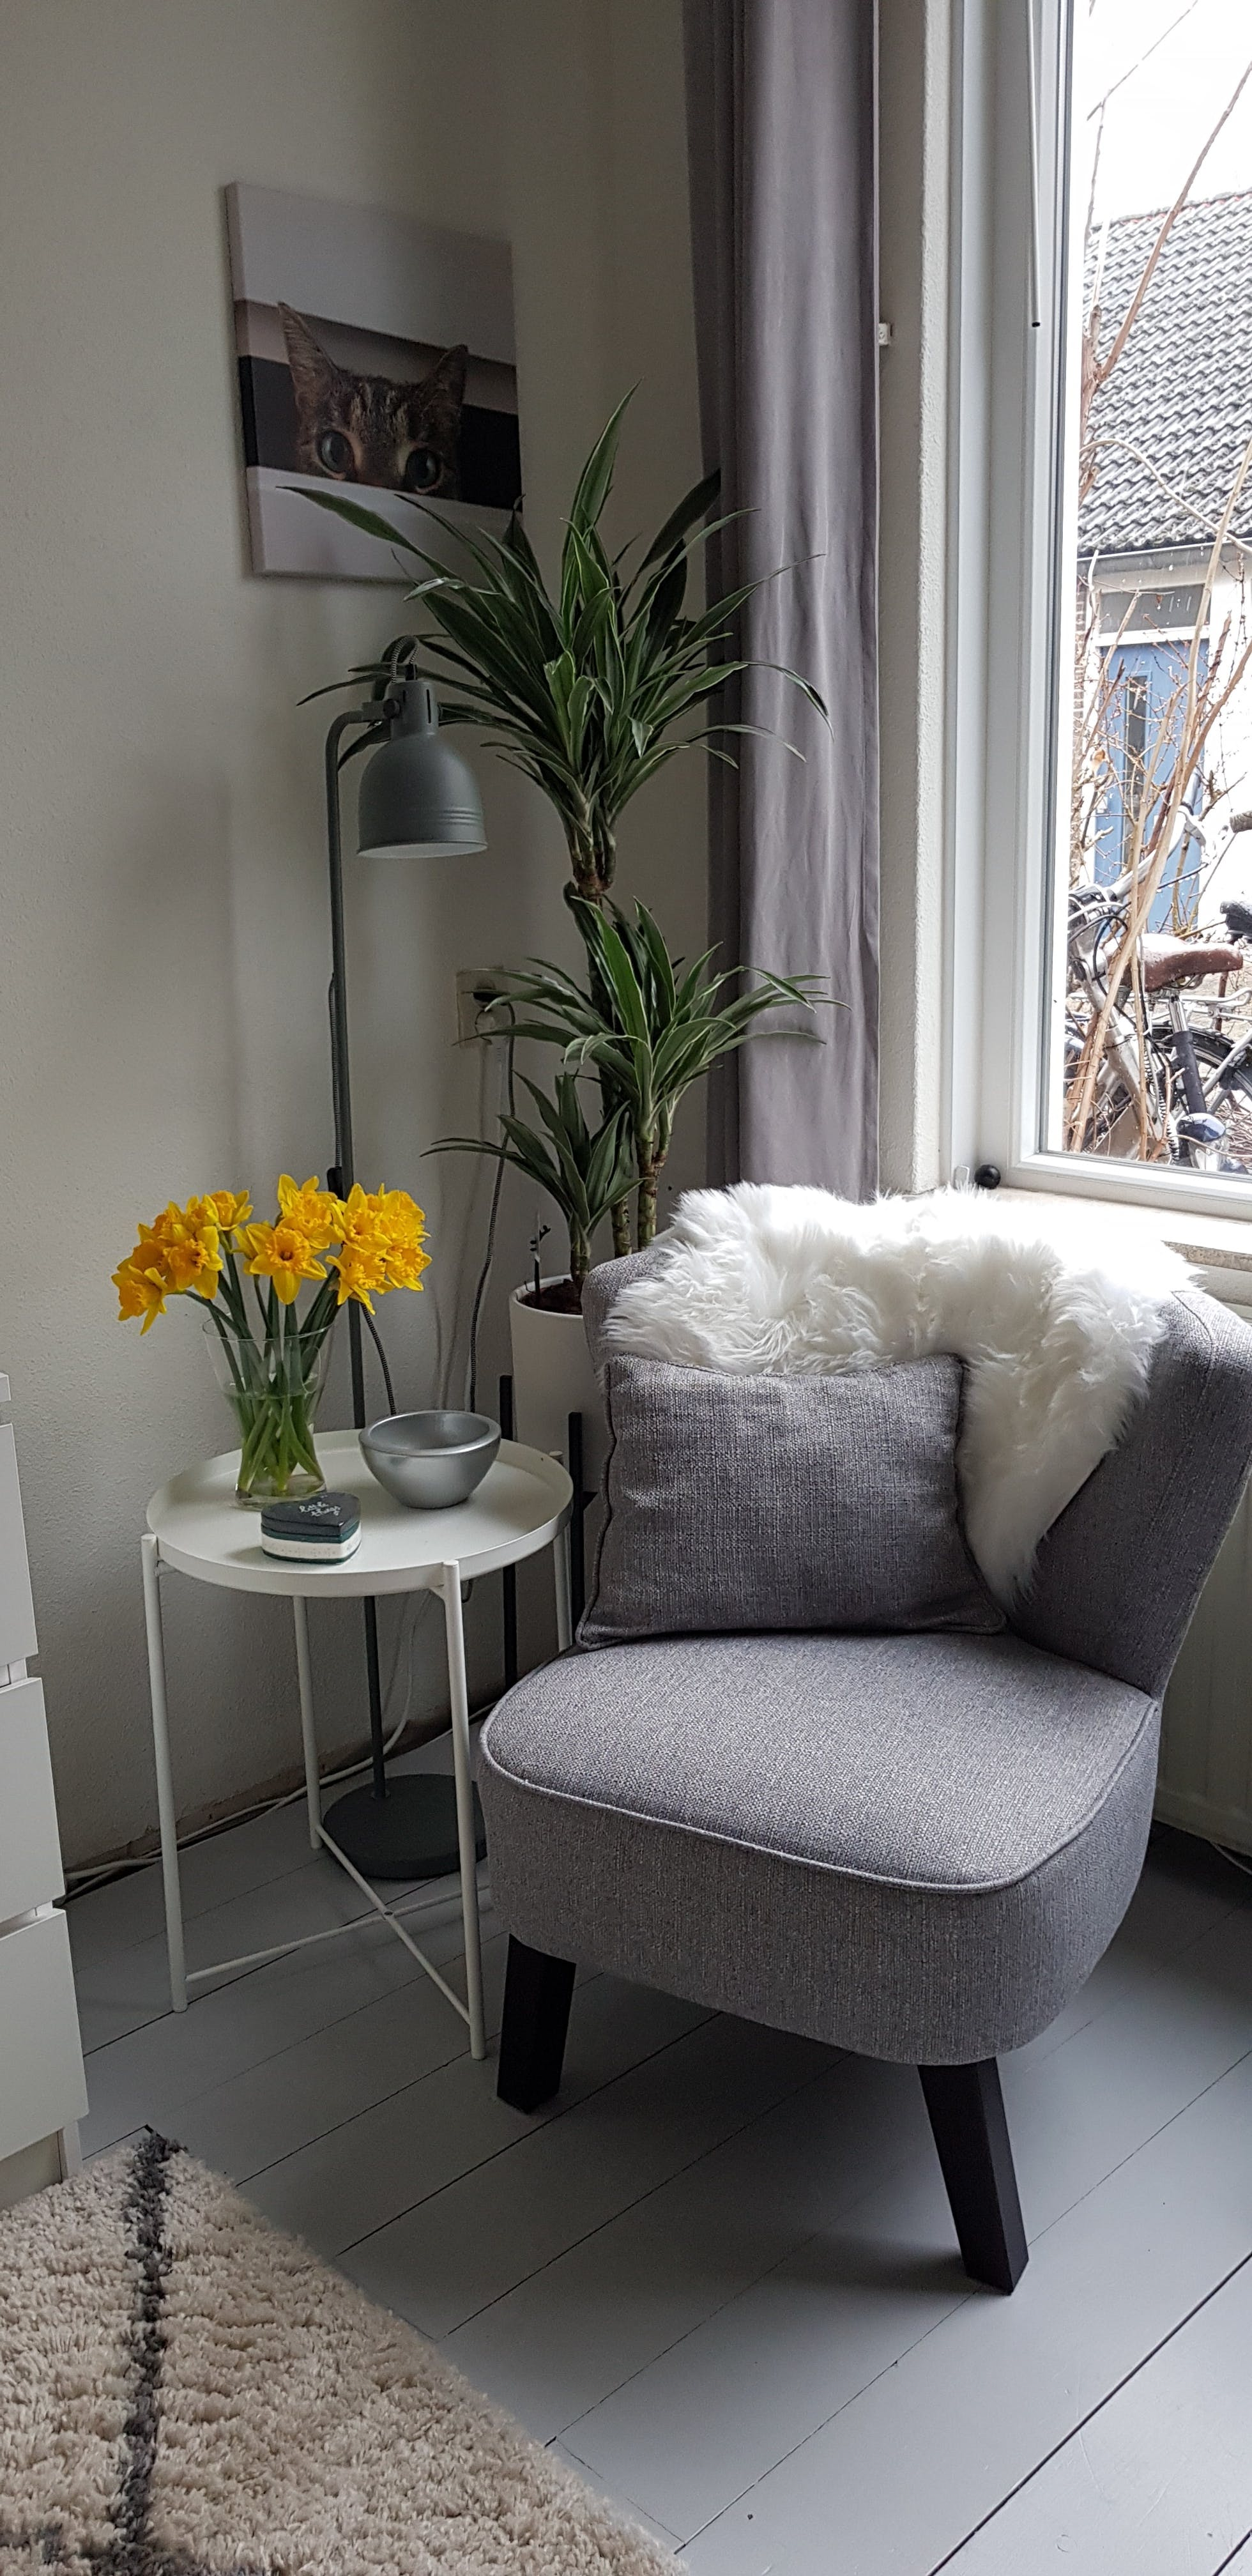 Free stock photo of chair, daffodils, flower, grey